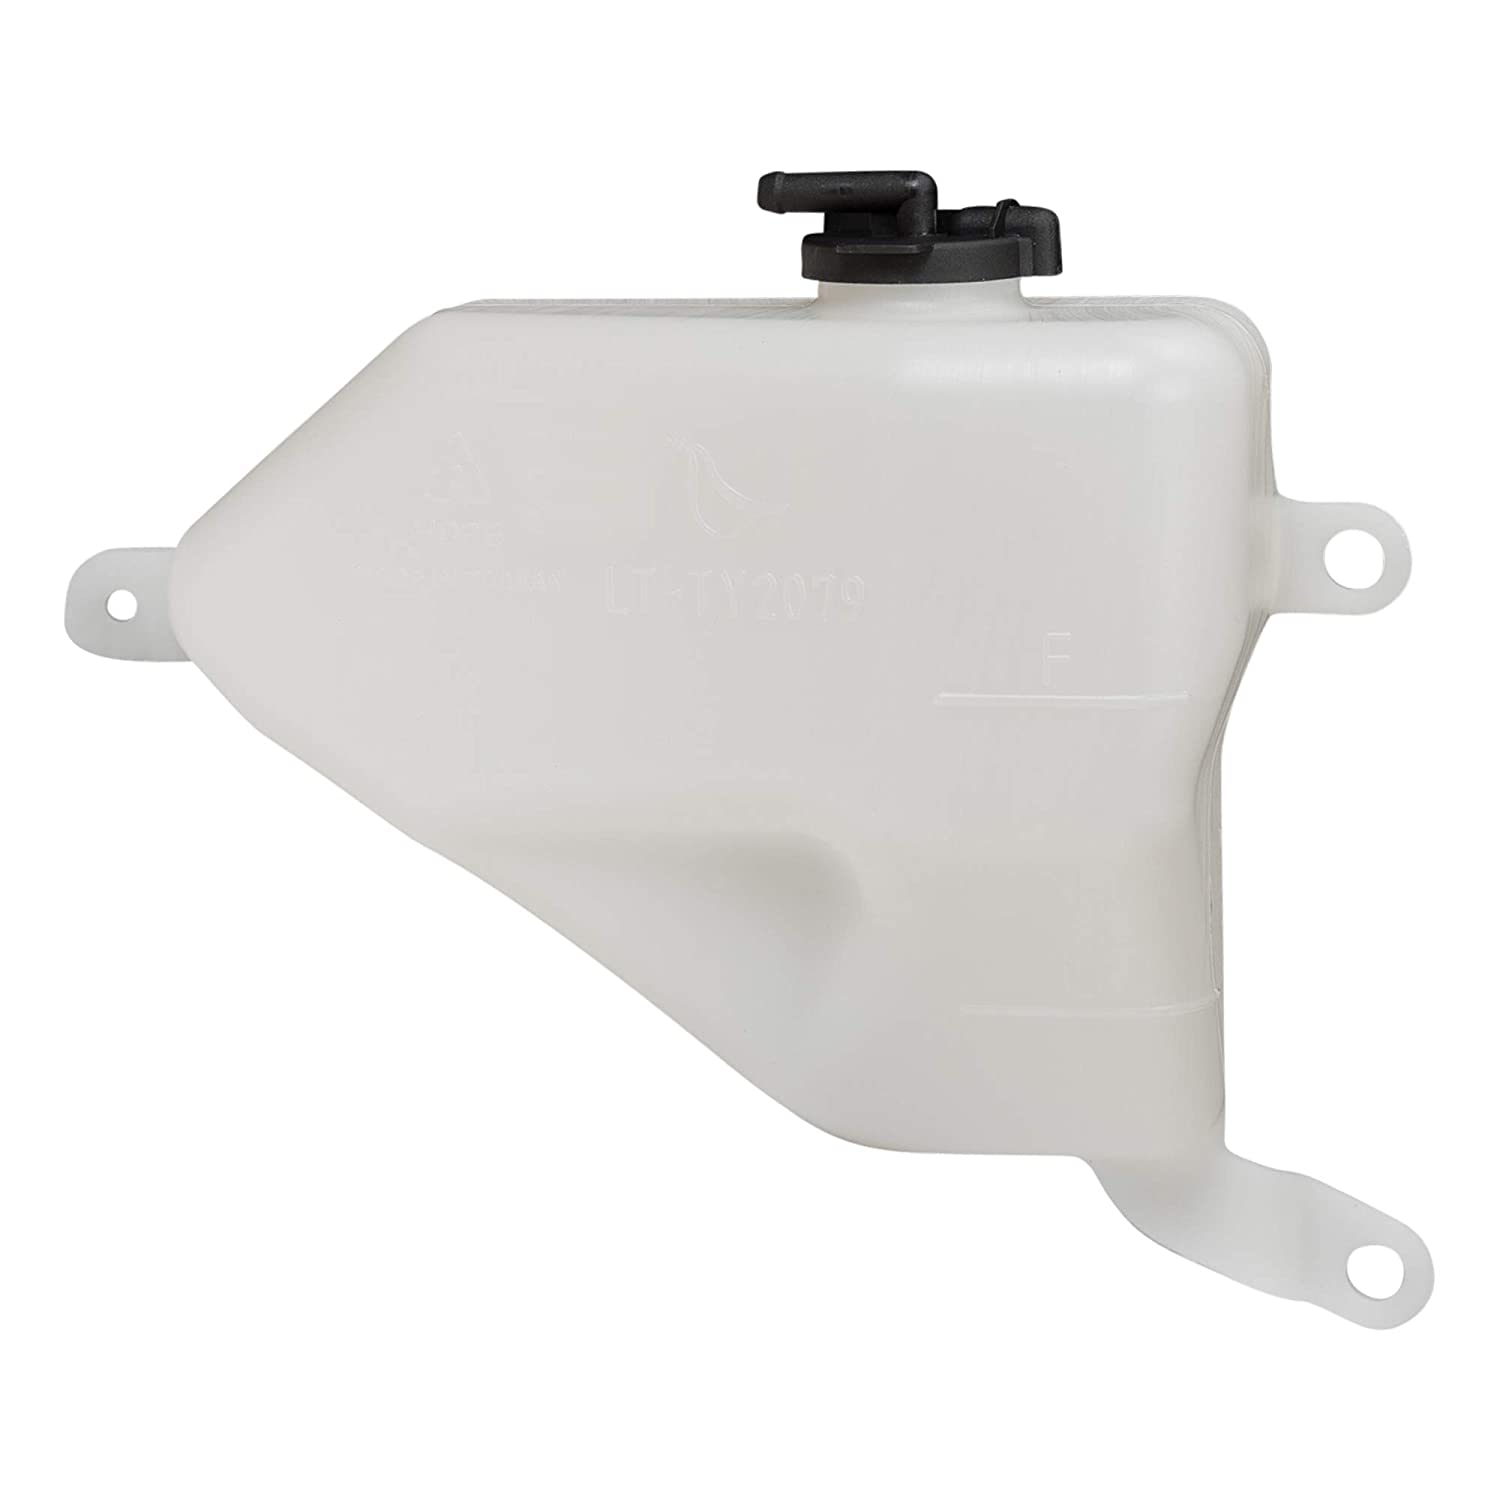 Coolant Tank Reservoir For 2010-2016 Toyota 4Runner fits TO3014125 16470-31050